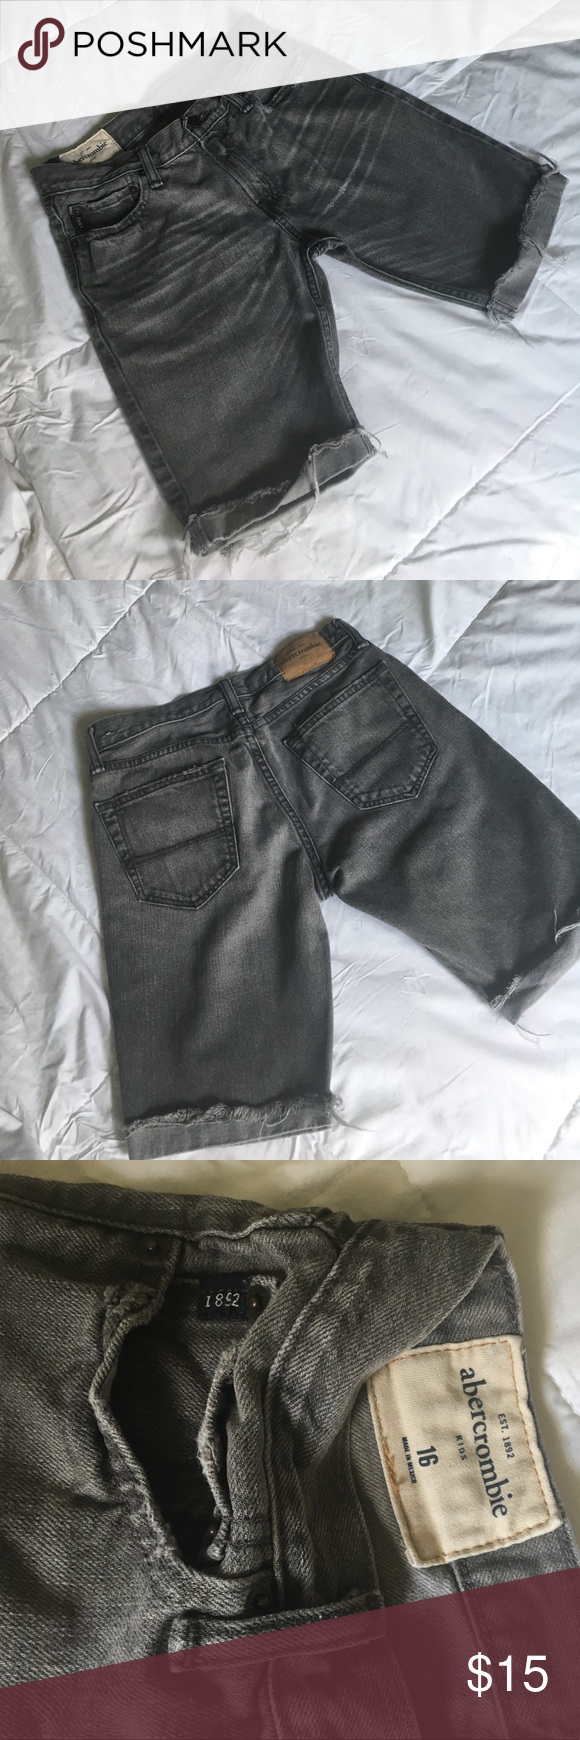 Abercrombie Shorts Kids Abercrombie Shorts size 16 boys. Excellent used condition abercrombie kids Bottoms Shorts